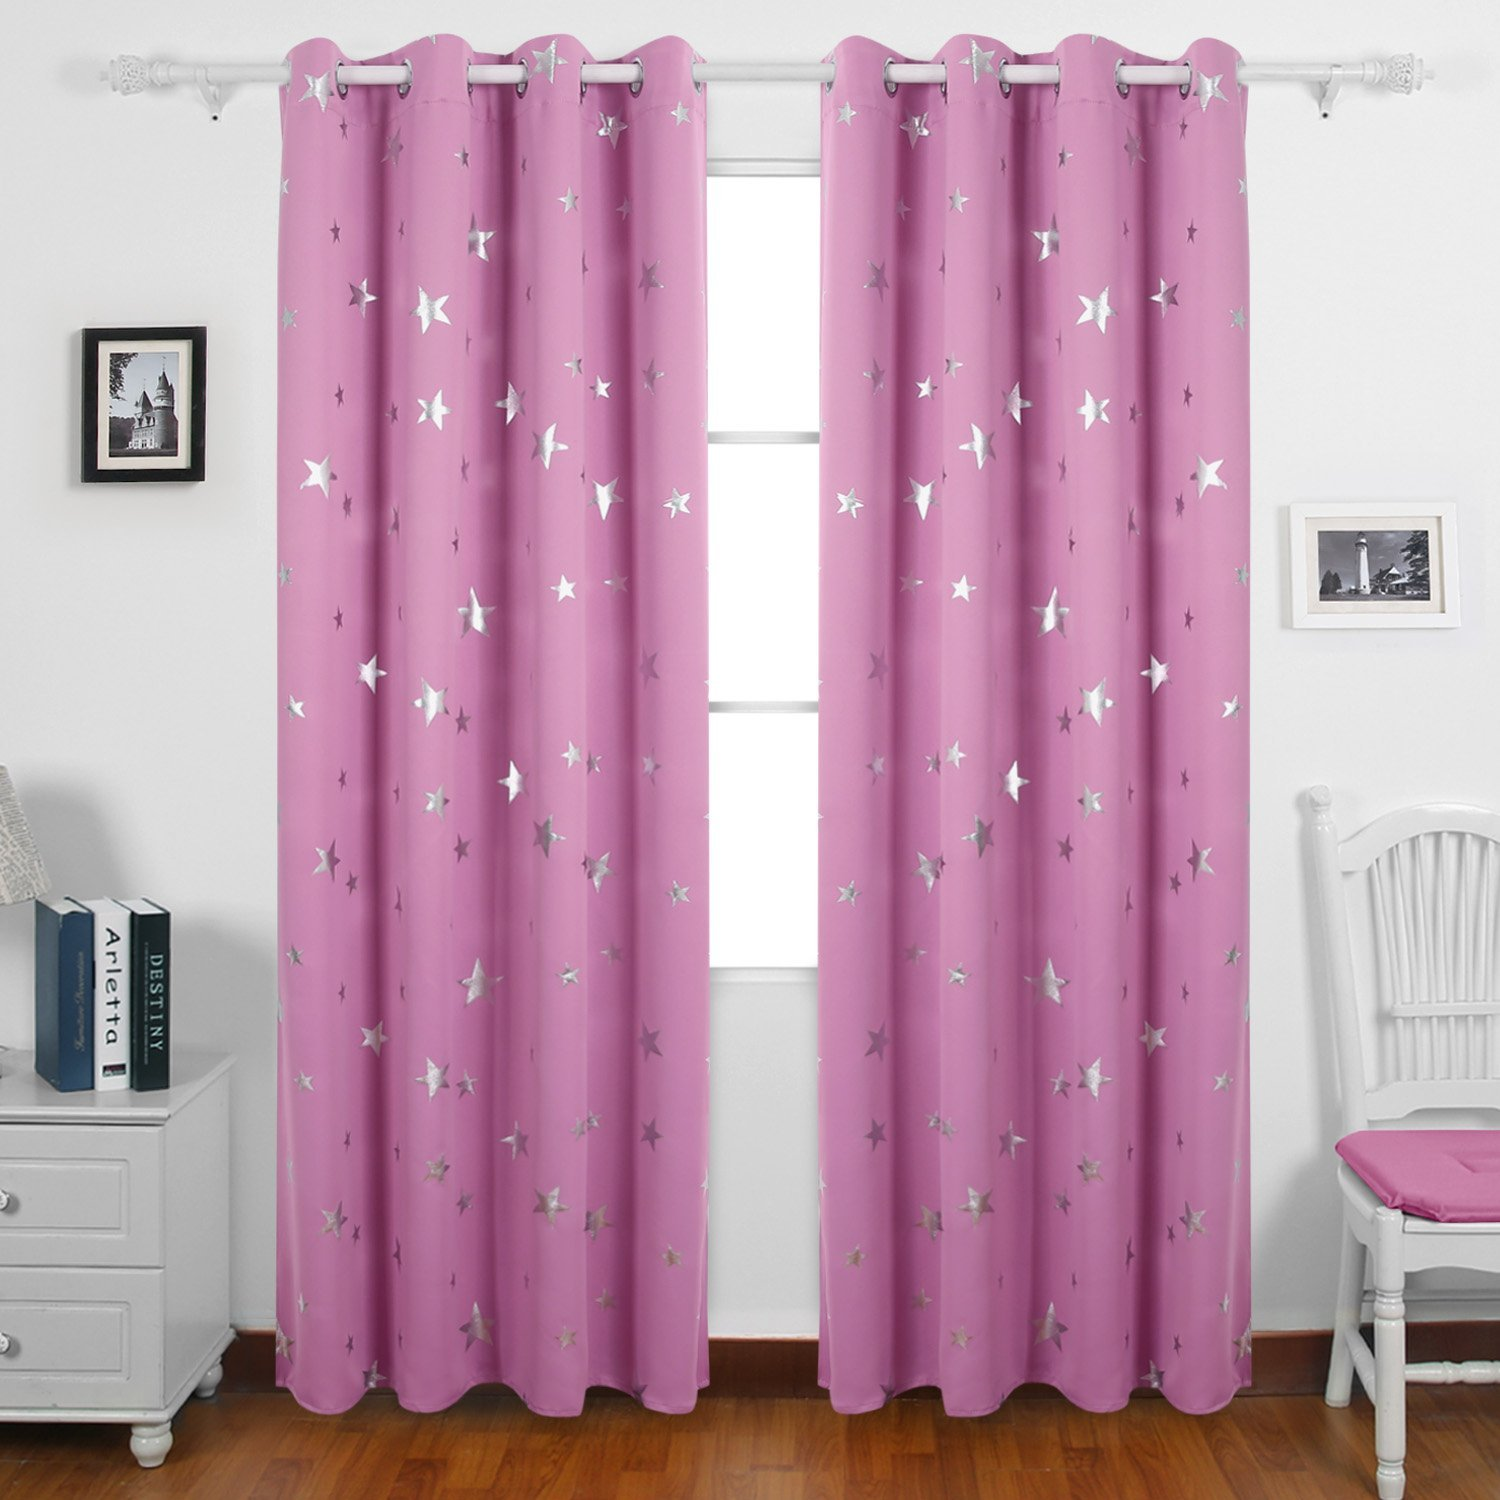 Thermal Window Drapes | Thermal Insulated Curtains | Thermal Curtain Panel